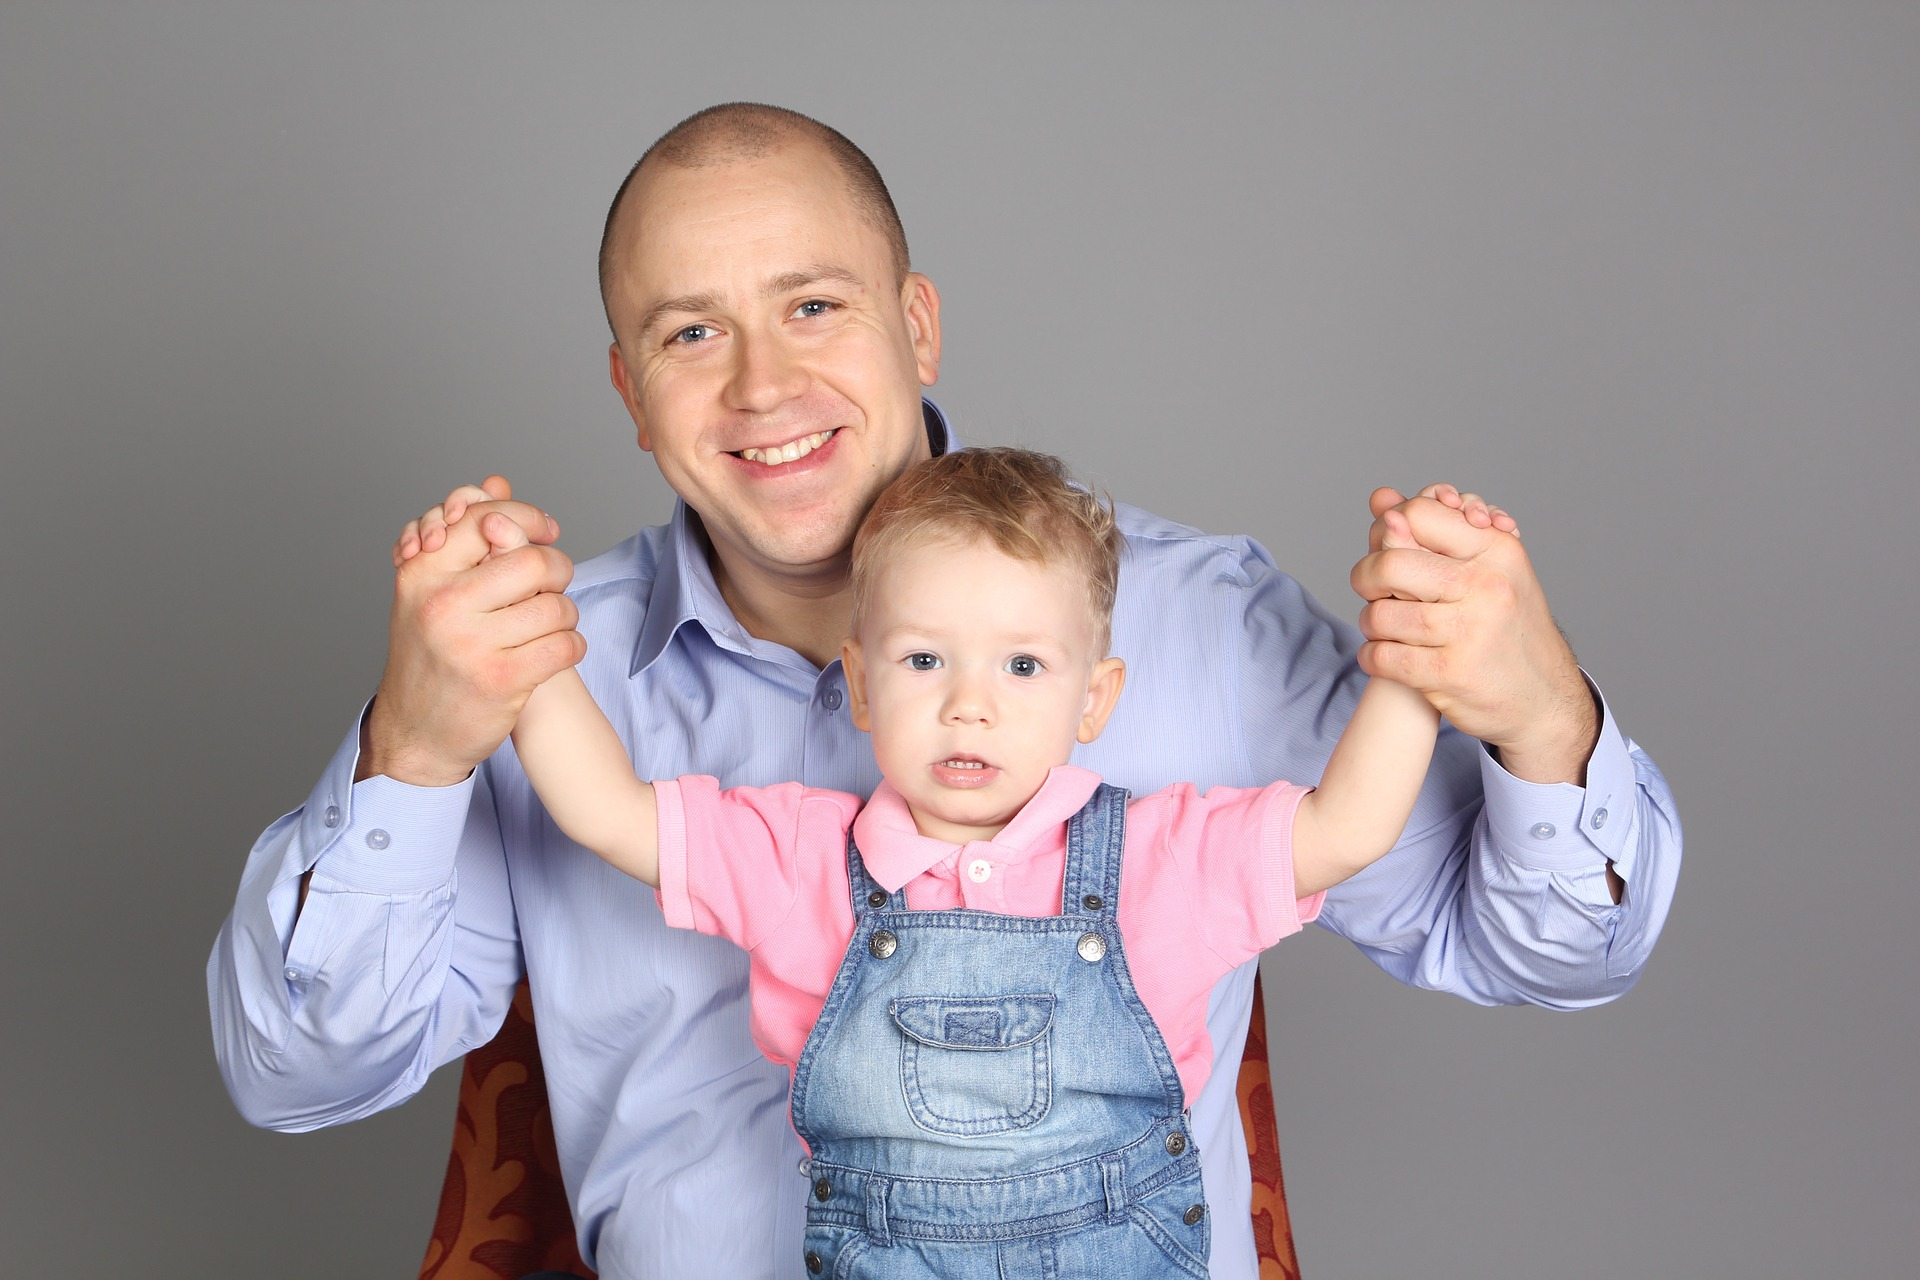 Father and Son happy after their experiences at Treforys Tiny Tots Creche in Swansea